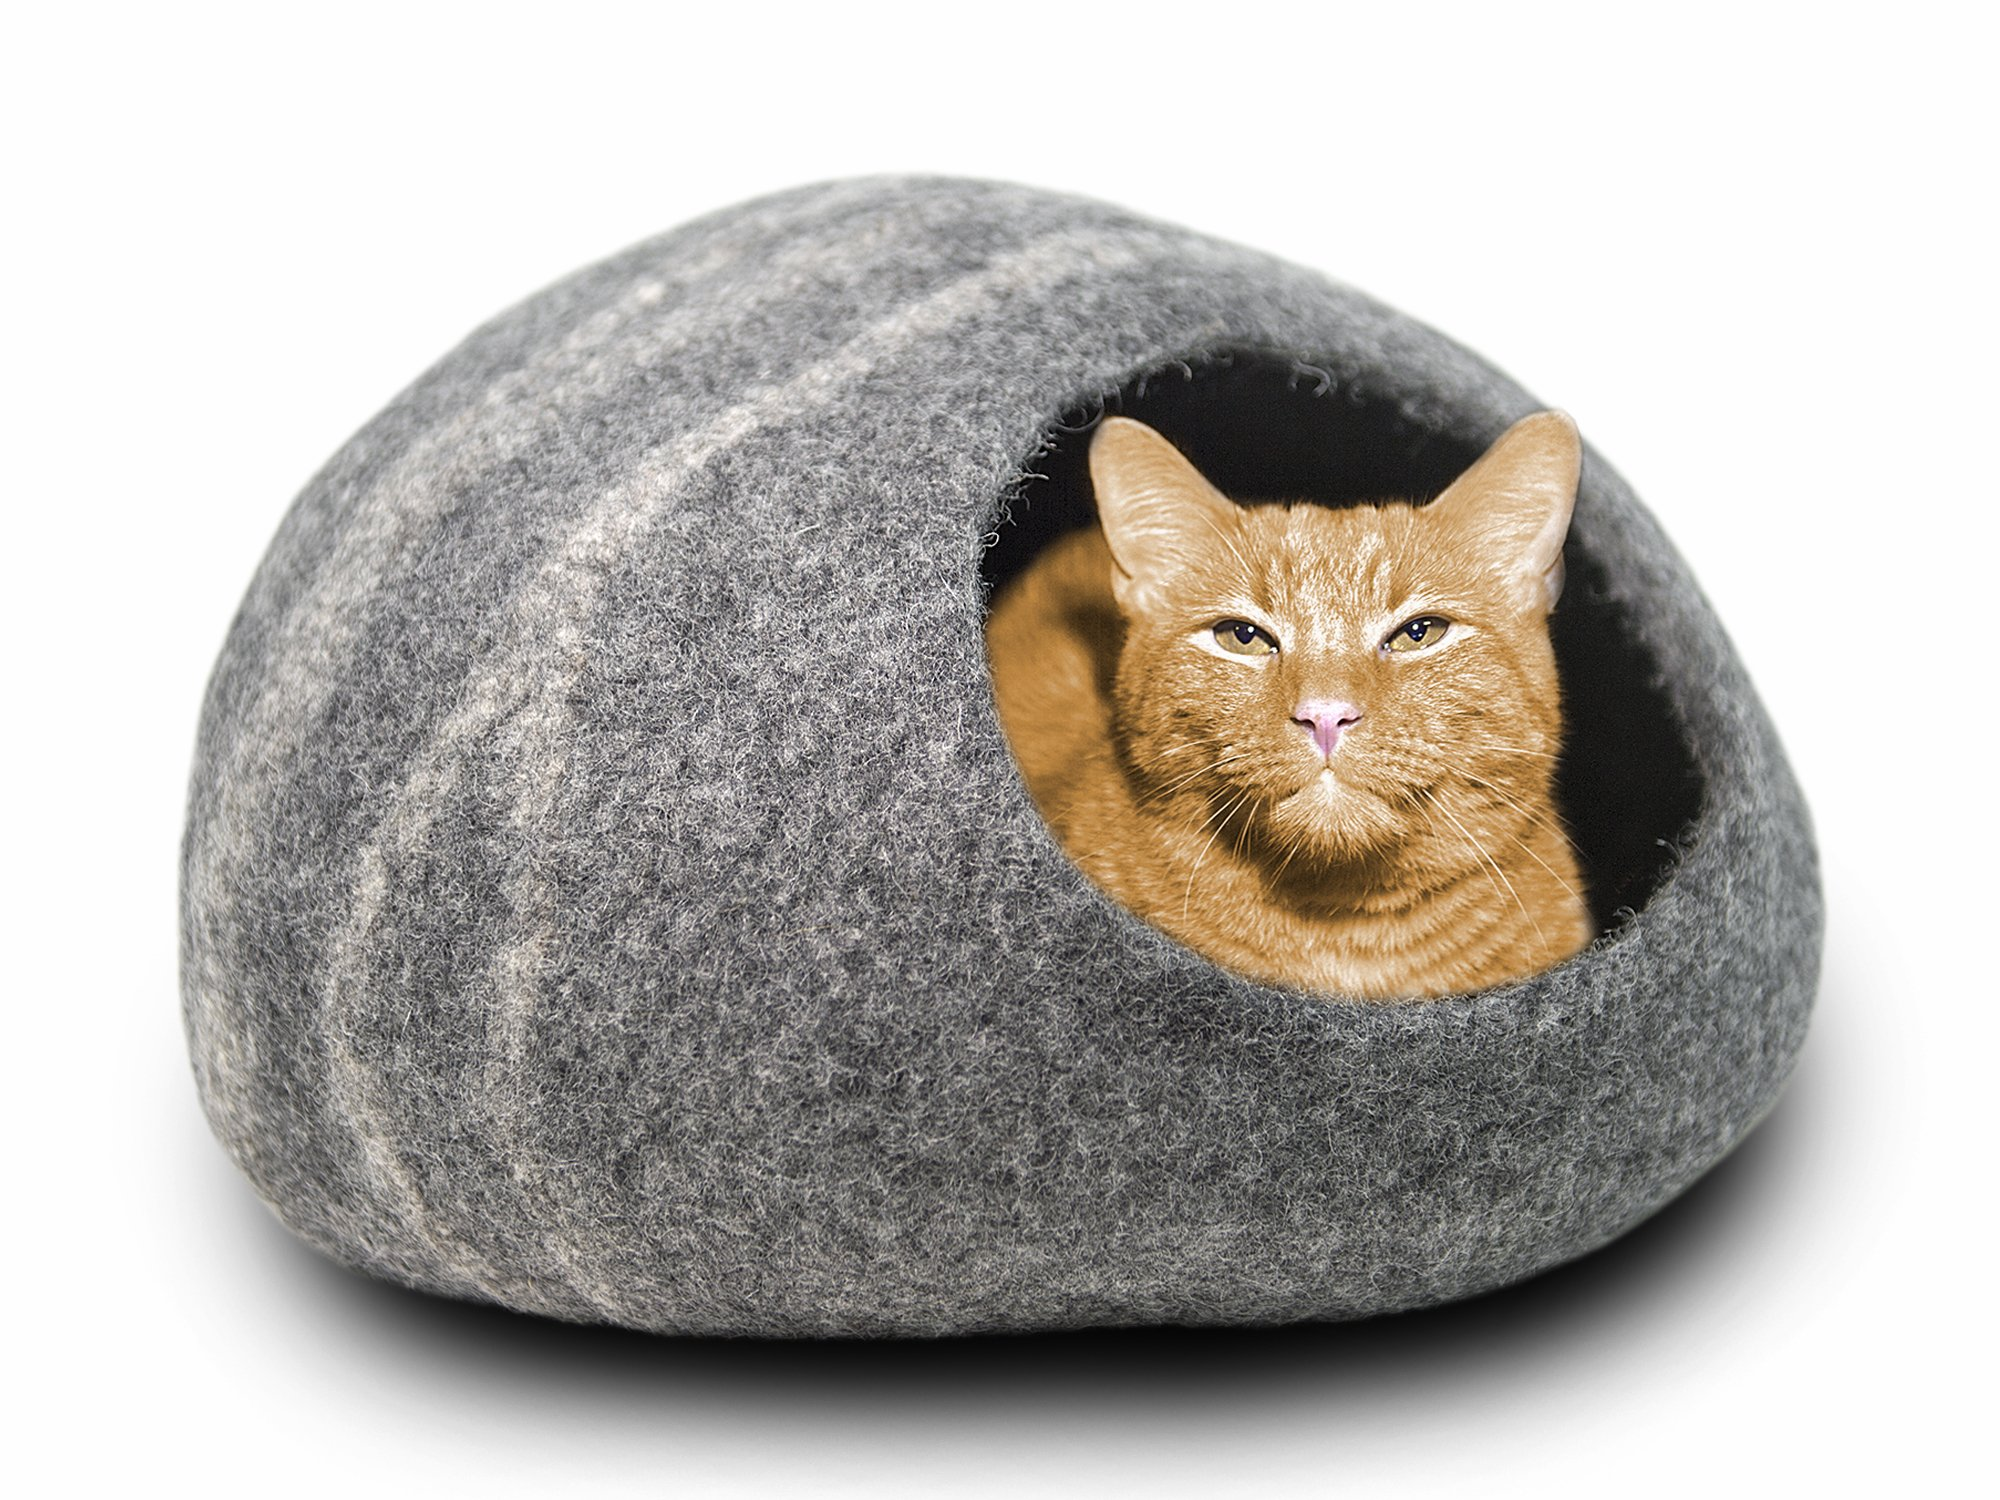 MEOWFIA Premium Felt Cat Cave Bed (Large) - Eco-Friendly 100% Merino Wool Cat Bed - Handmade - Soft and Comfy Beds for Large Cats and Kittens(Dark Grey) by MEOWFIA (Image #1)